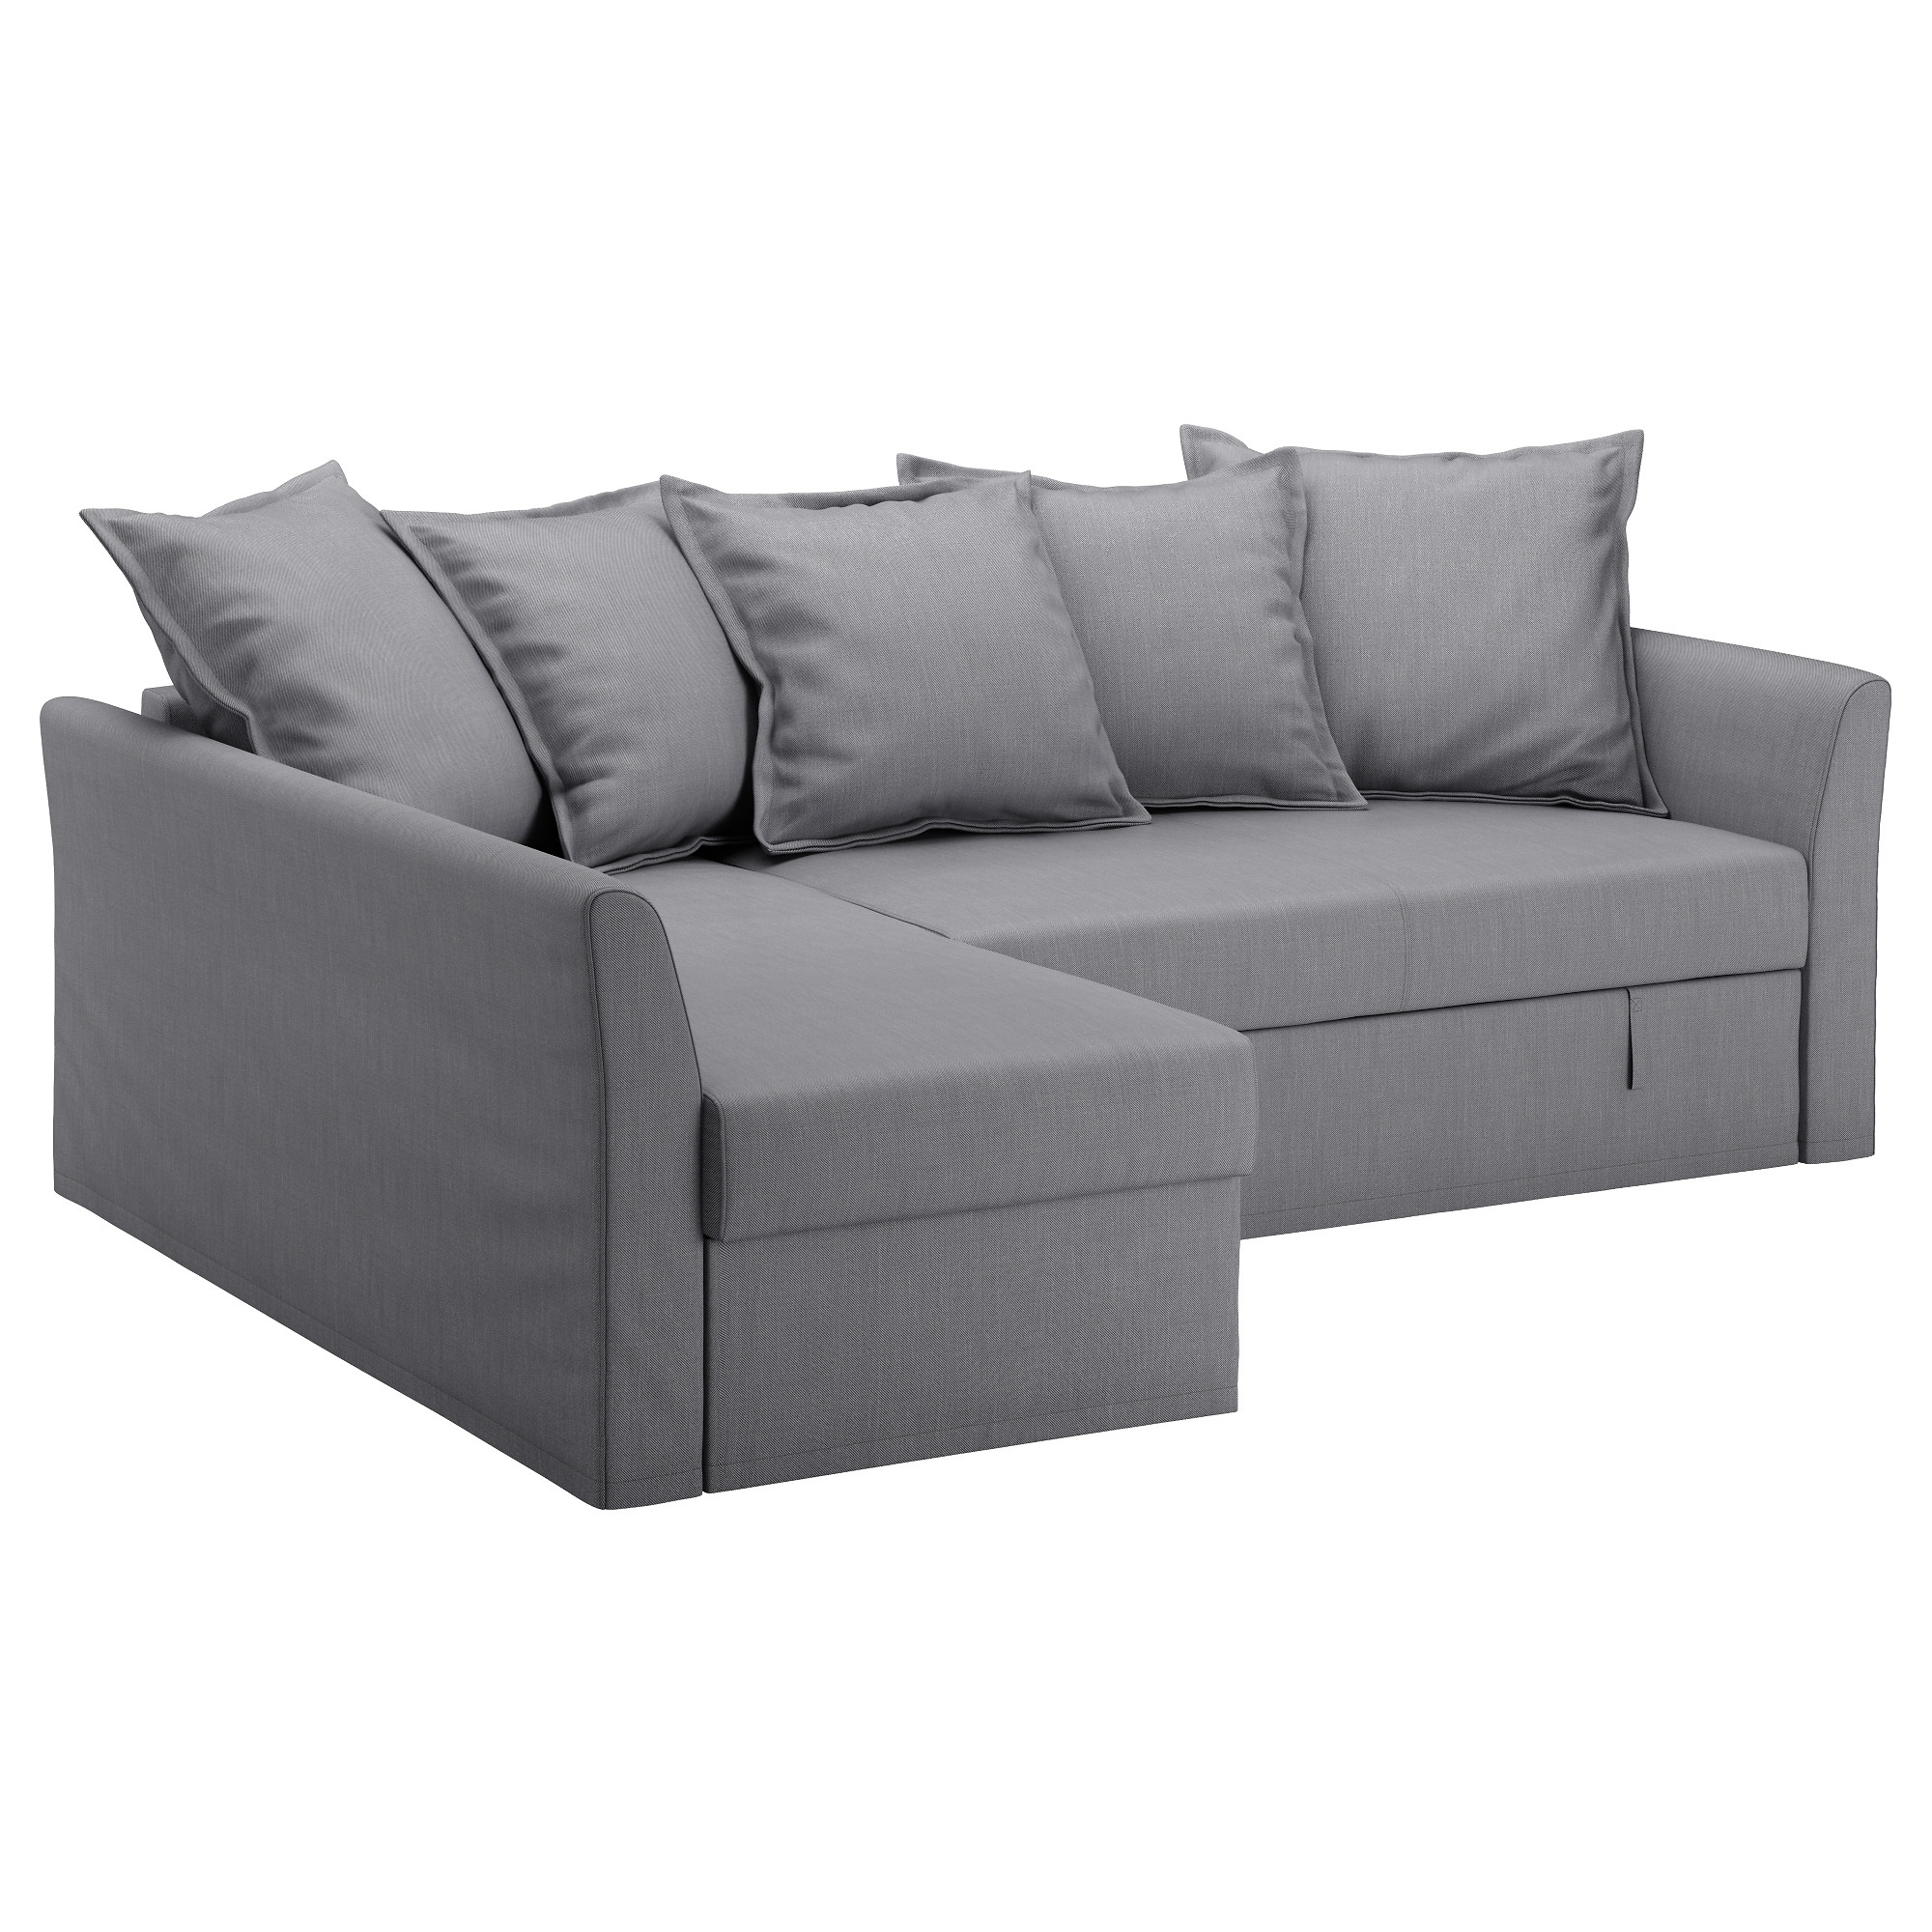 Ikea Chaise Couches Pertaining To Fashionable Holmsund Sleeper Sectional, 3 Seat – Orrsta Light White Gray – Ikea (View 6 of 15)